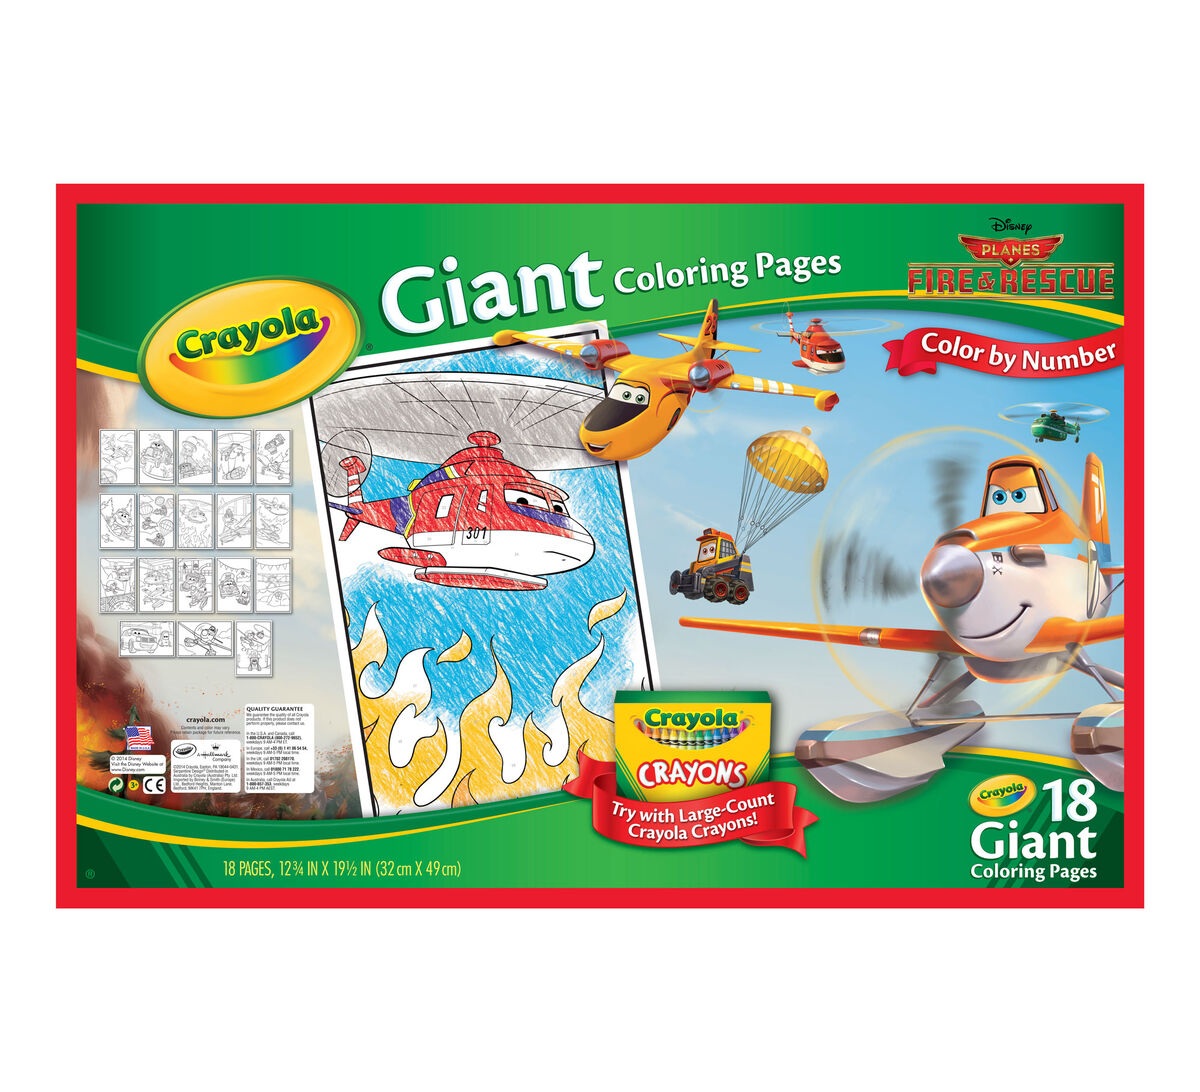 Giant Coloring Pages Disney Planes